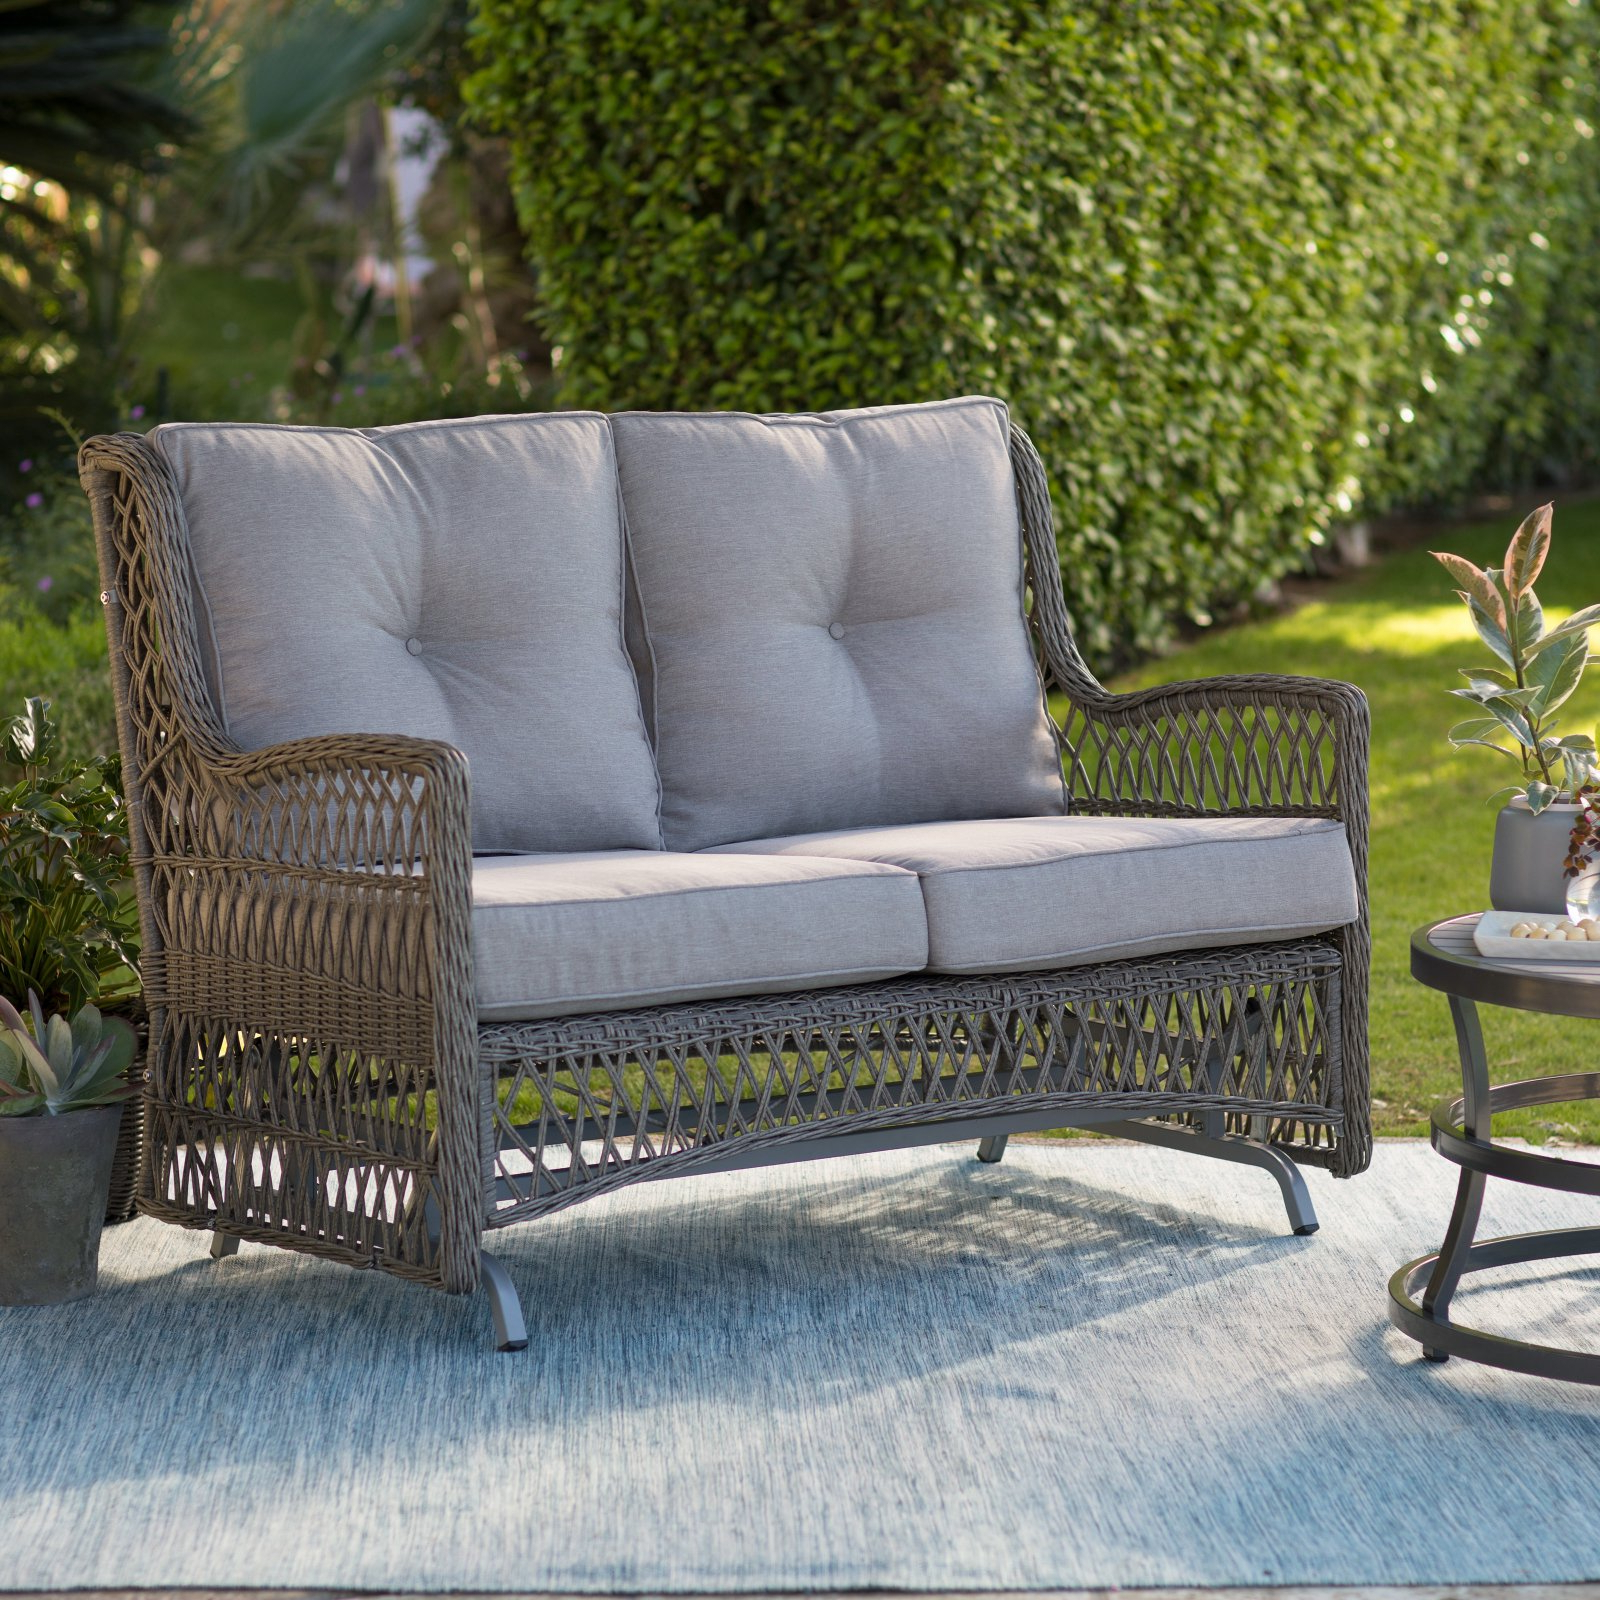 Recent Double Glider Benches With Cushion In Belham Living Bristol Outdoor Glider Bench With Cushions (View 9 of 30)